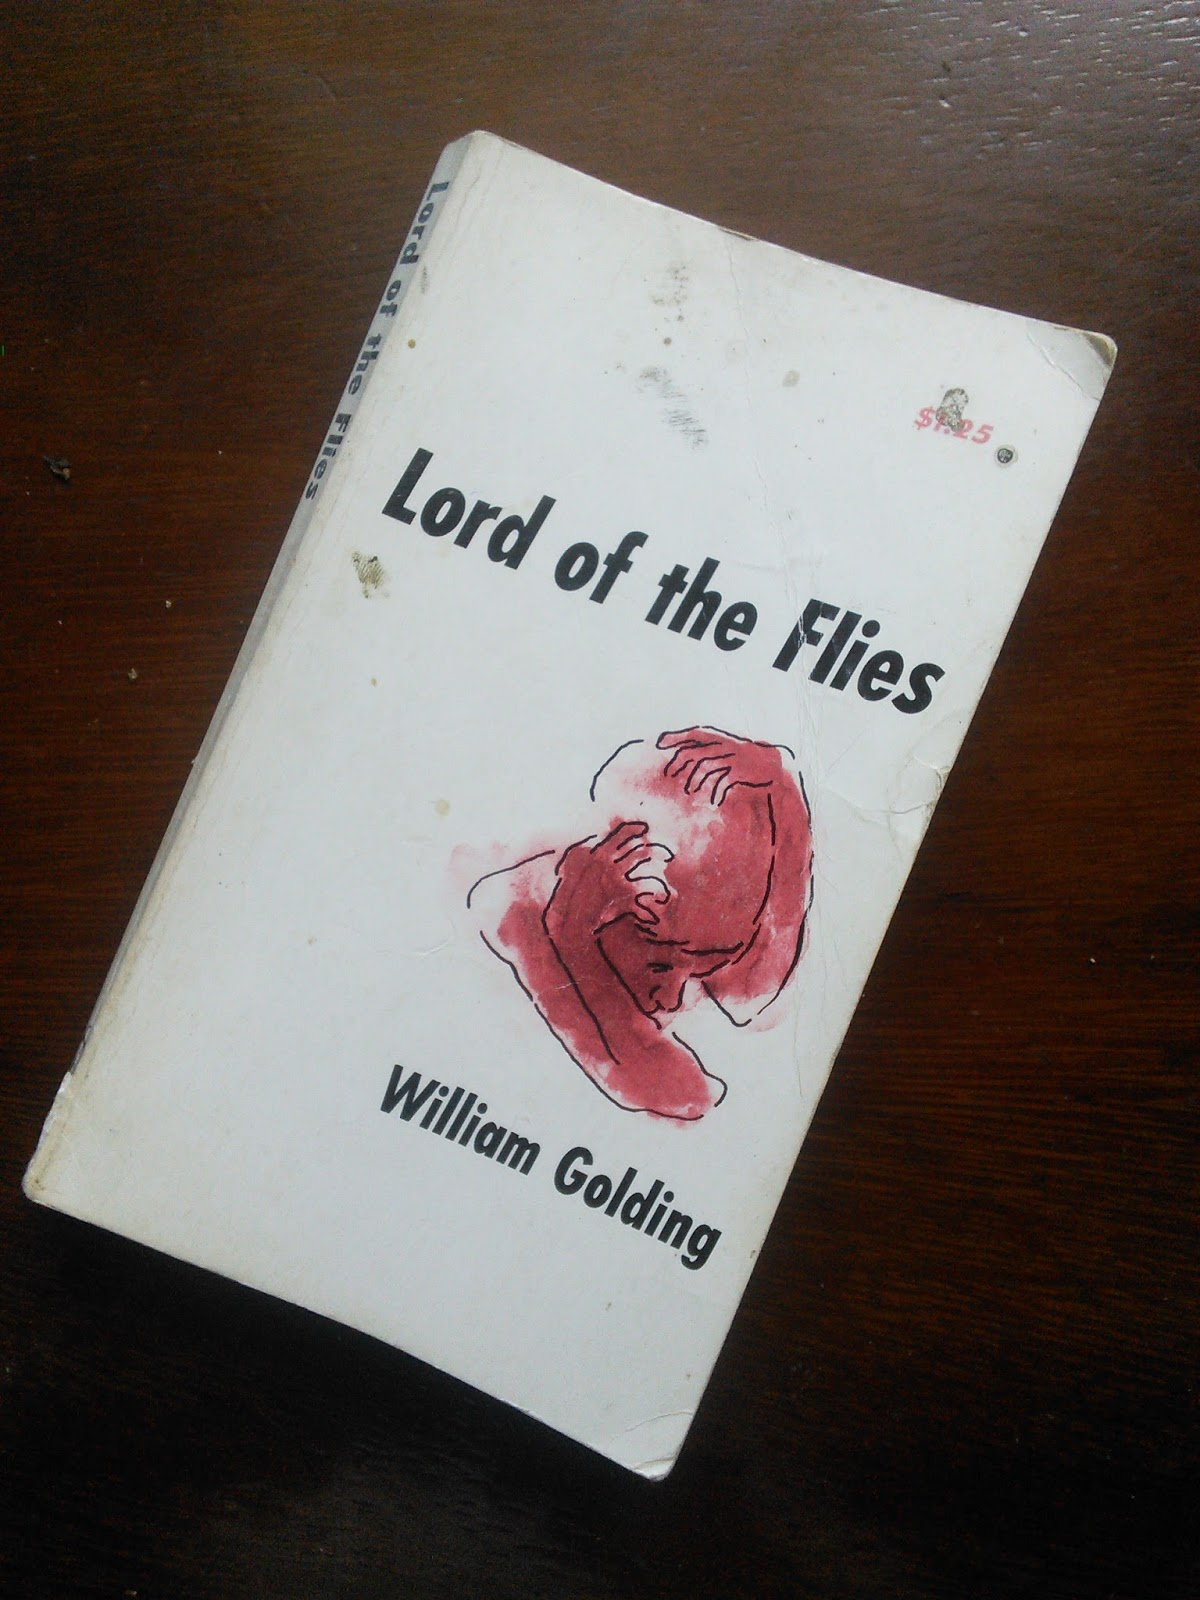 sigmund freud lord of the flies thesis 【the id, ego and superego in lord of the flies】essay example you can get this essay free or hire a writer get a+ for your essay with studymoose ⭐ more than 2700 essay samples on.